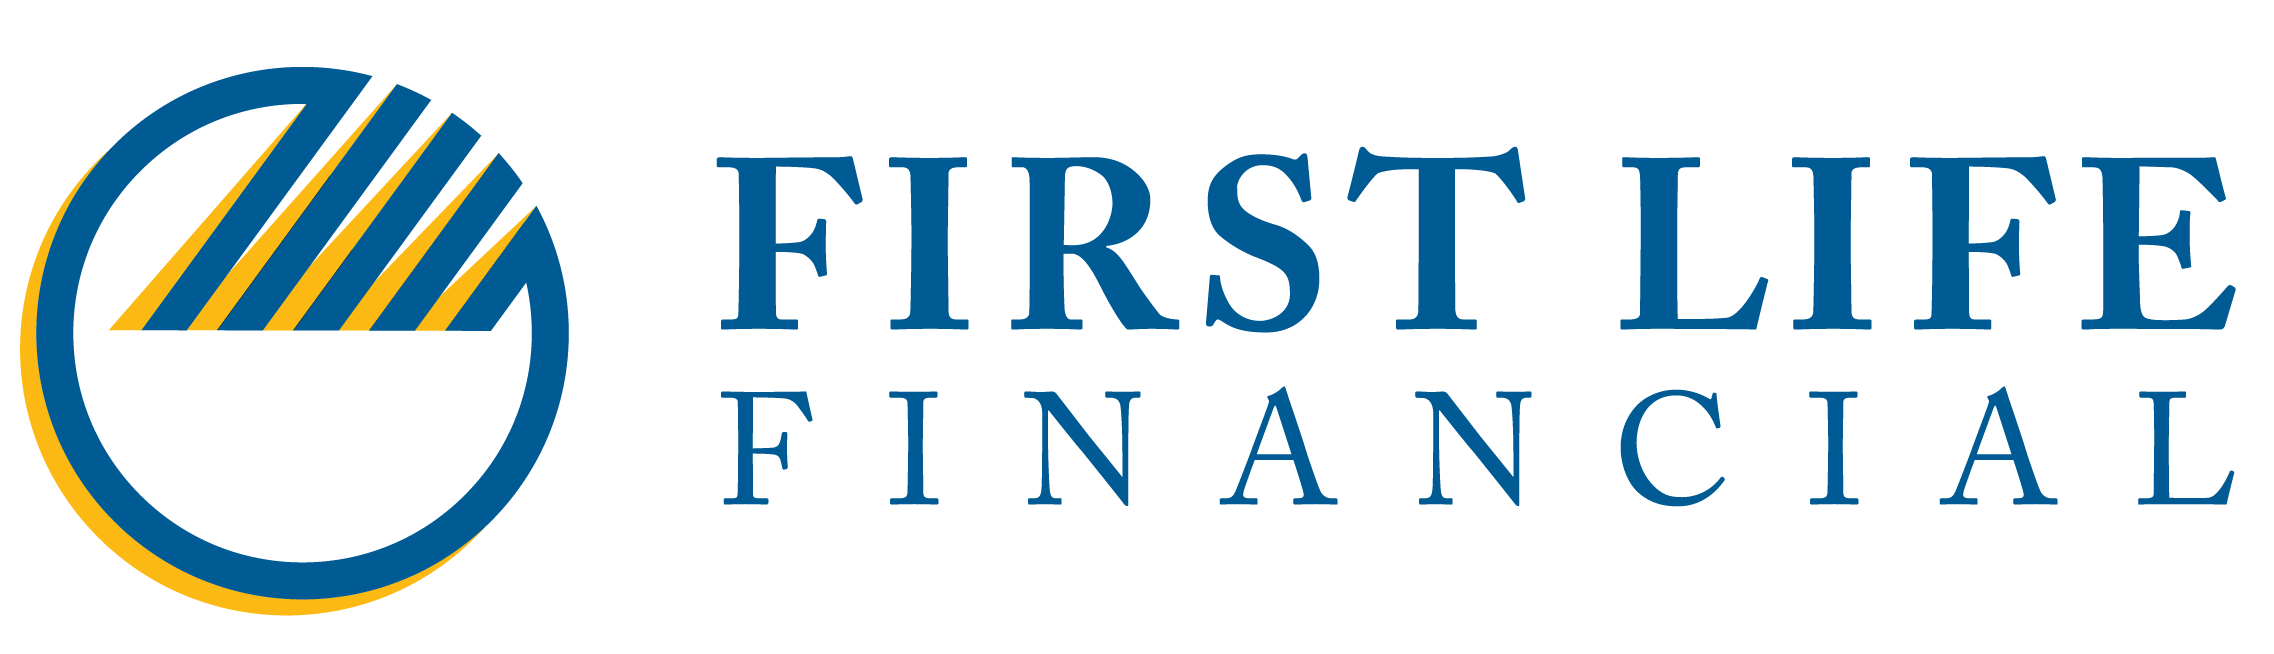 First Life Financial Co., Inc.